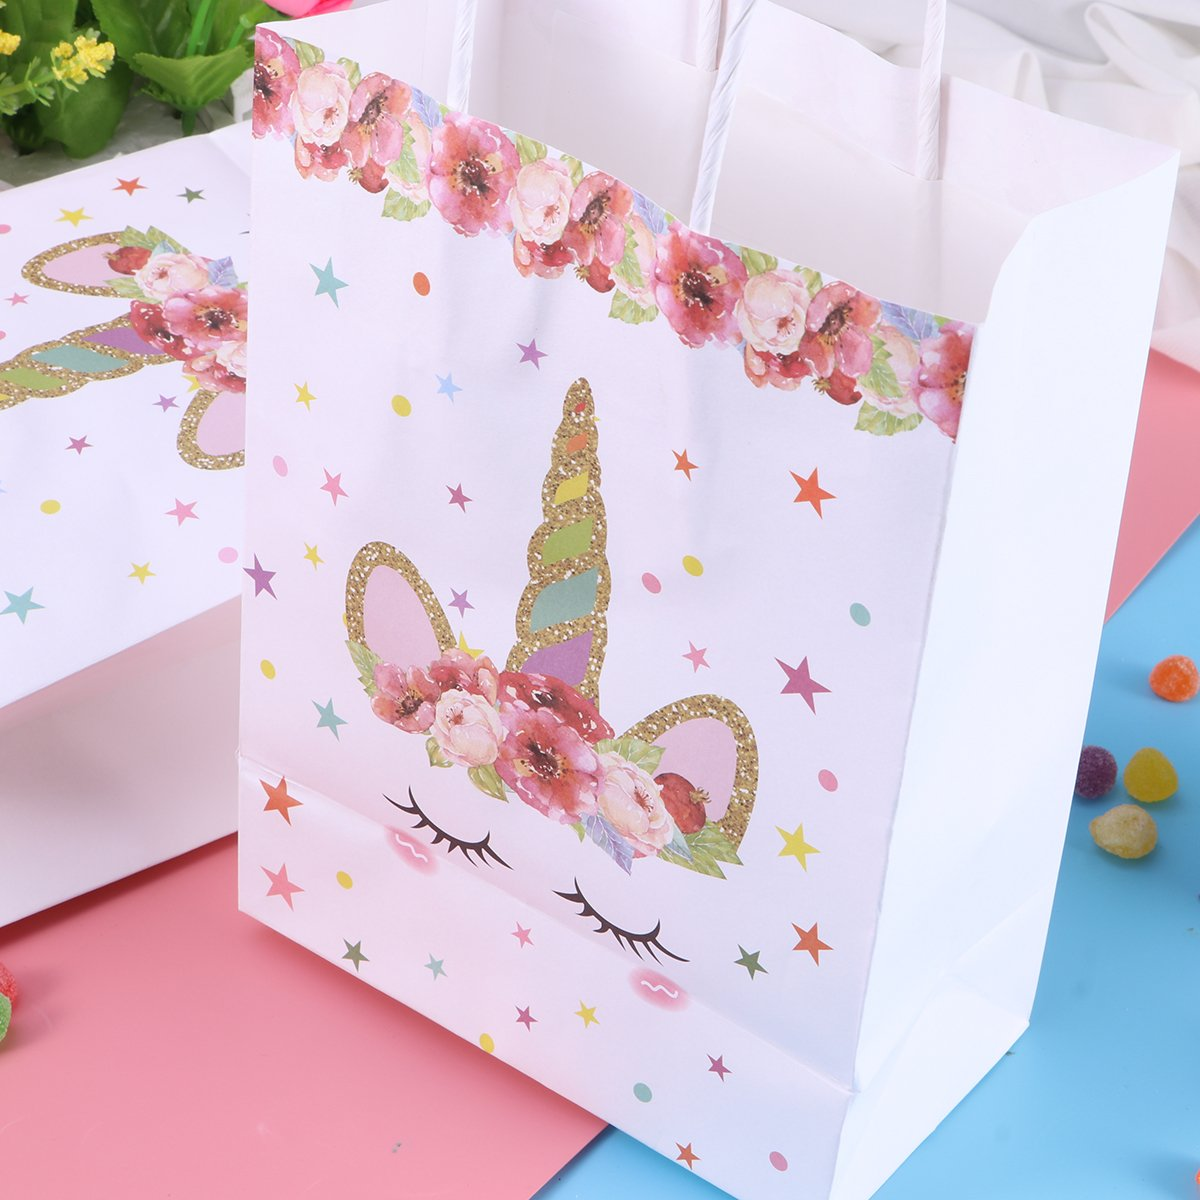 Amazon.com: LUOEM 10 Pcs Unicorn Paper Treat Bags Unicorn Pattern Paper Candy Bags Party Favor Bags Gift Bags Chocolate Gift Treat Boxes for Kids Birthday ...